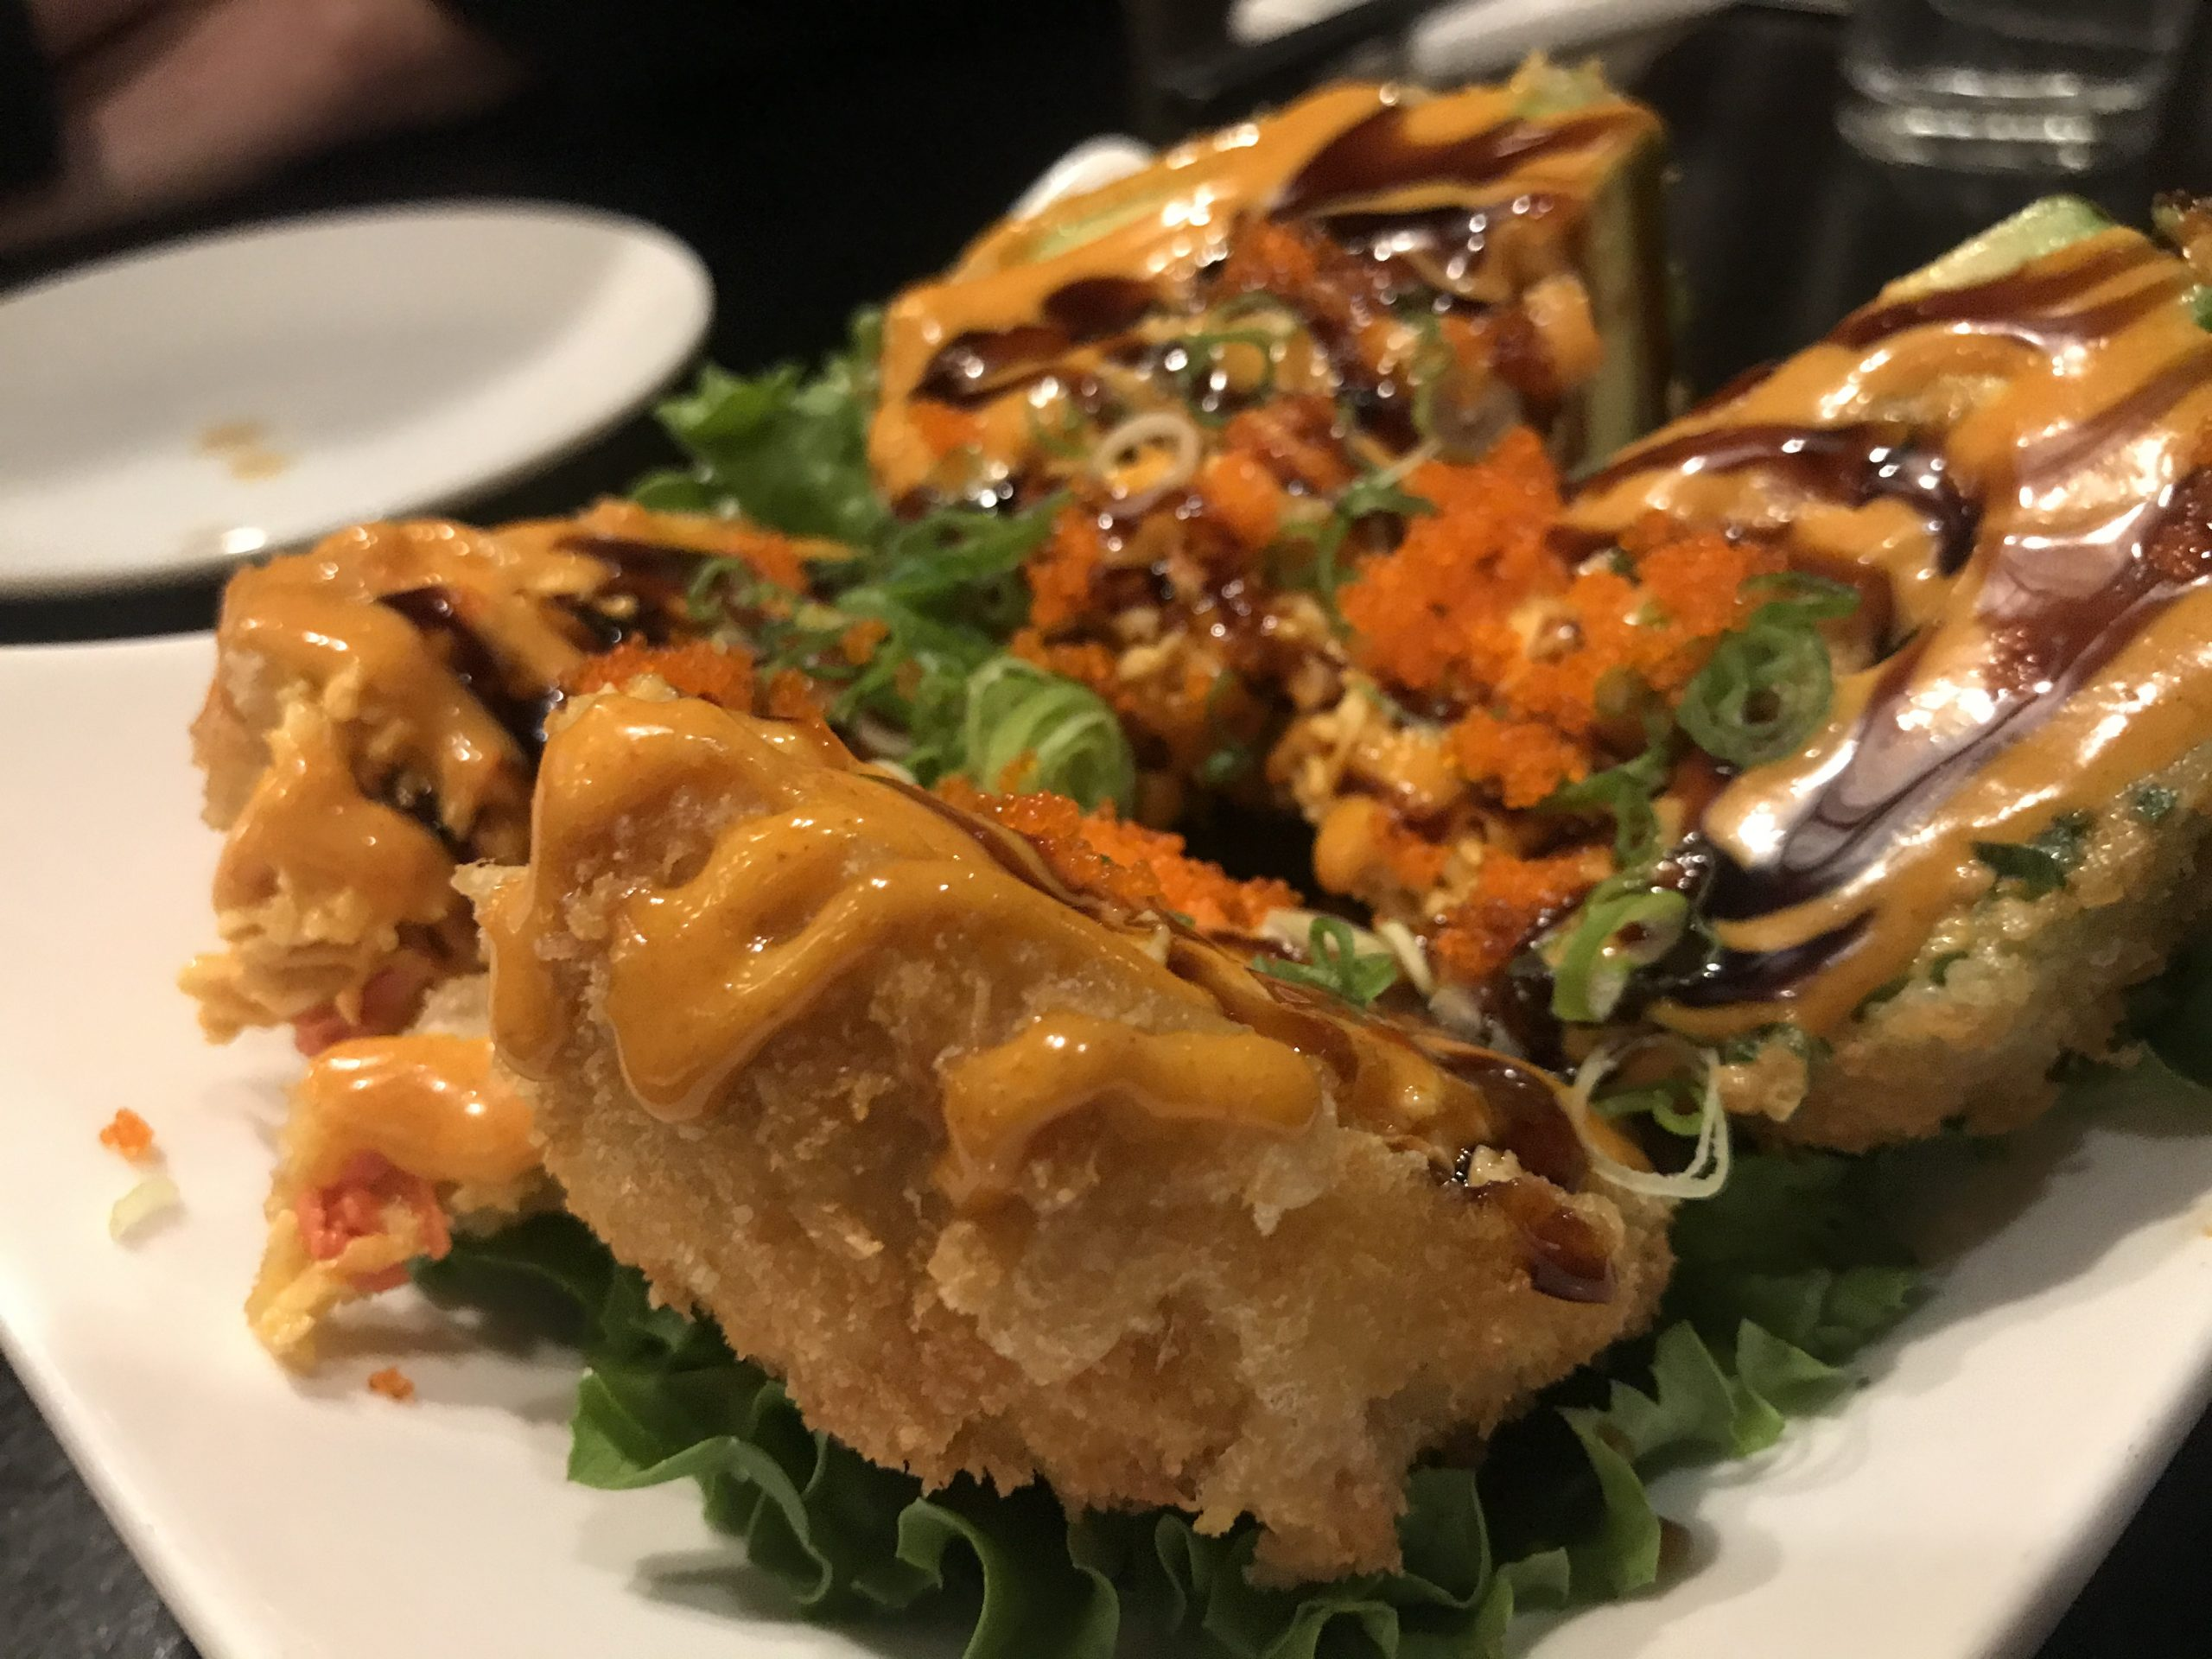 Dinner at Shiki Sushi in Kennewick – July 2 2019